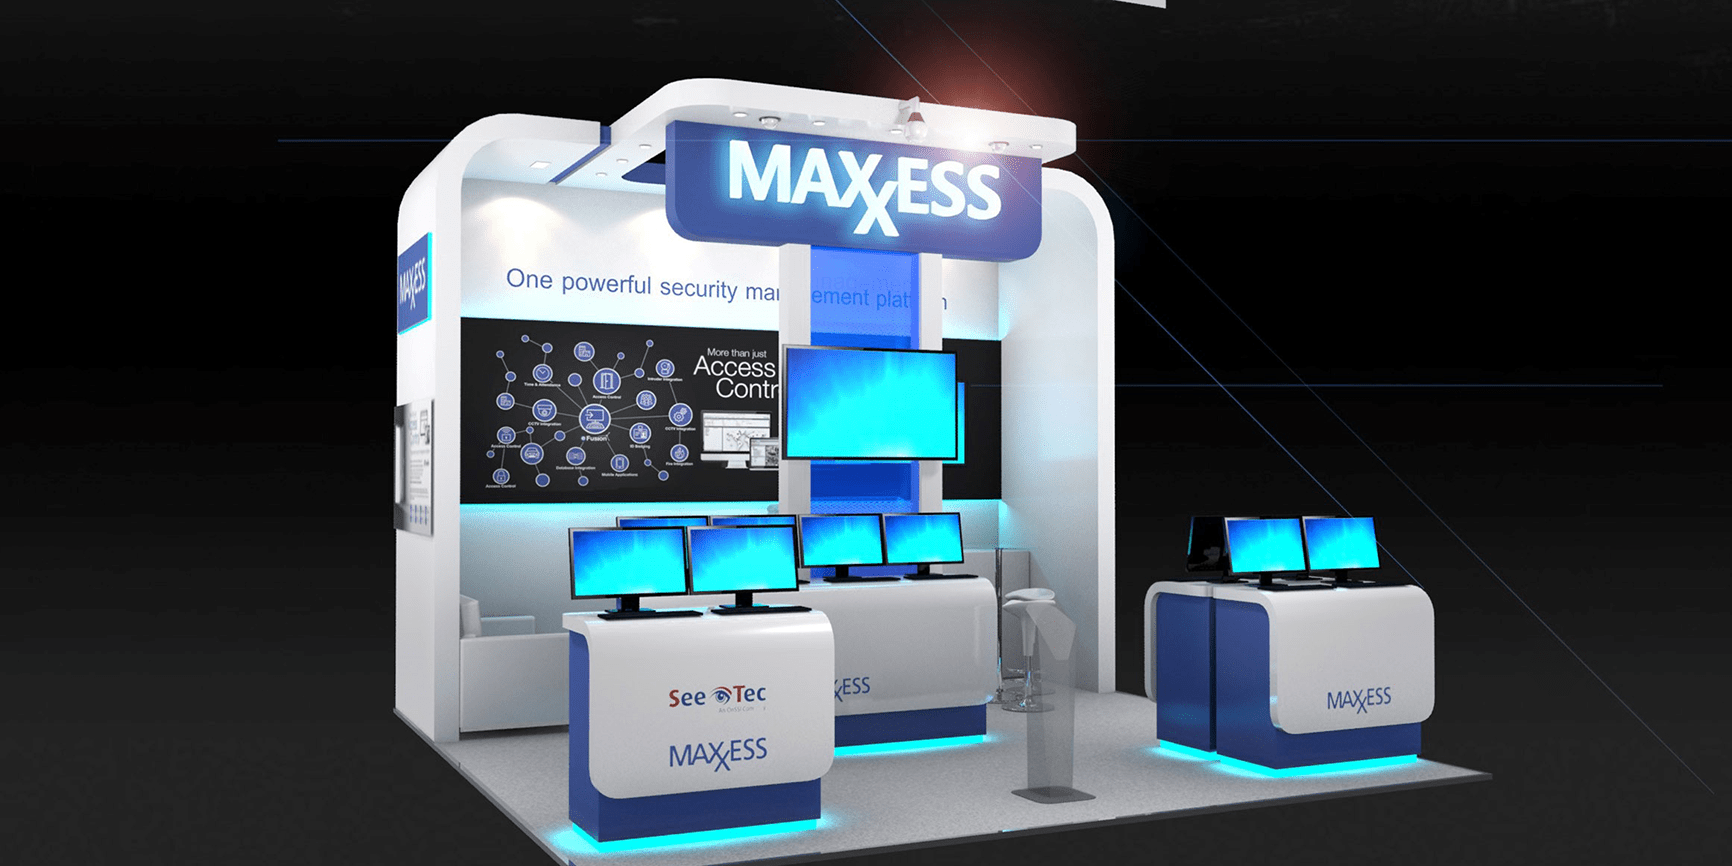 Maxxess to launch Ambit IPS workplace tracking at IFSEC